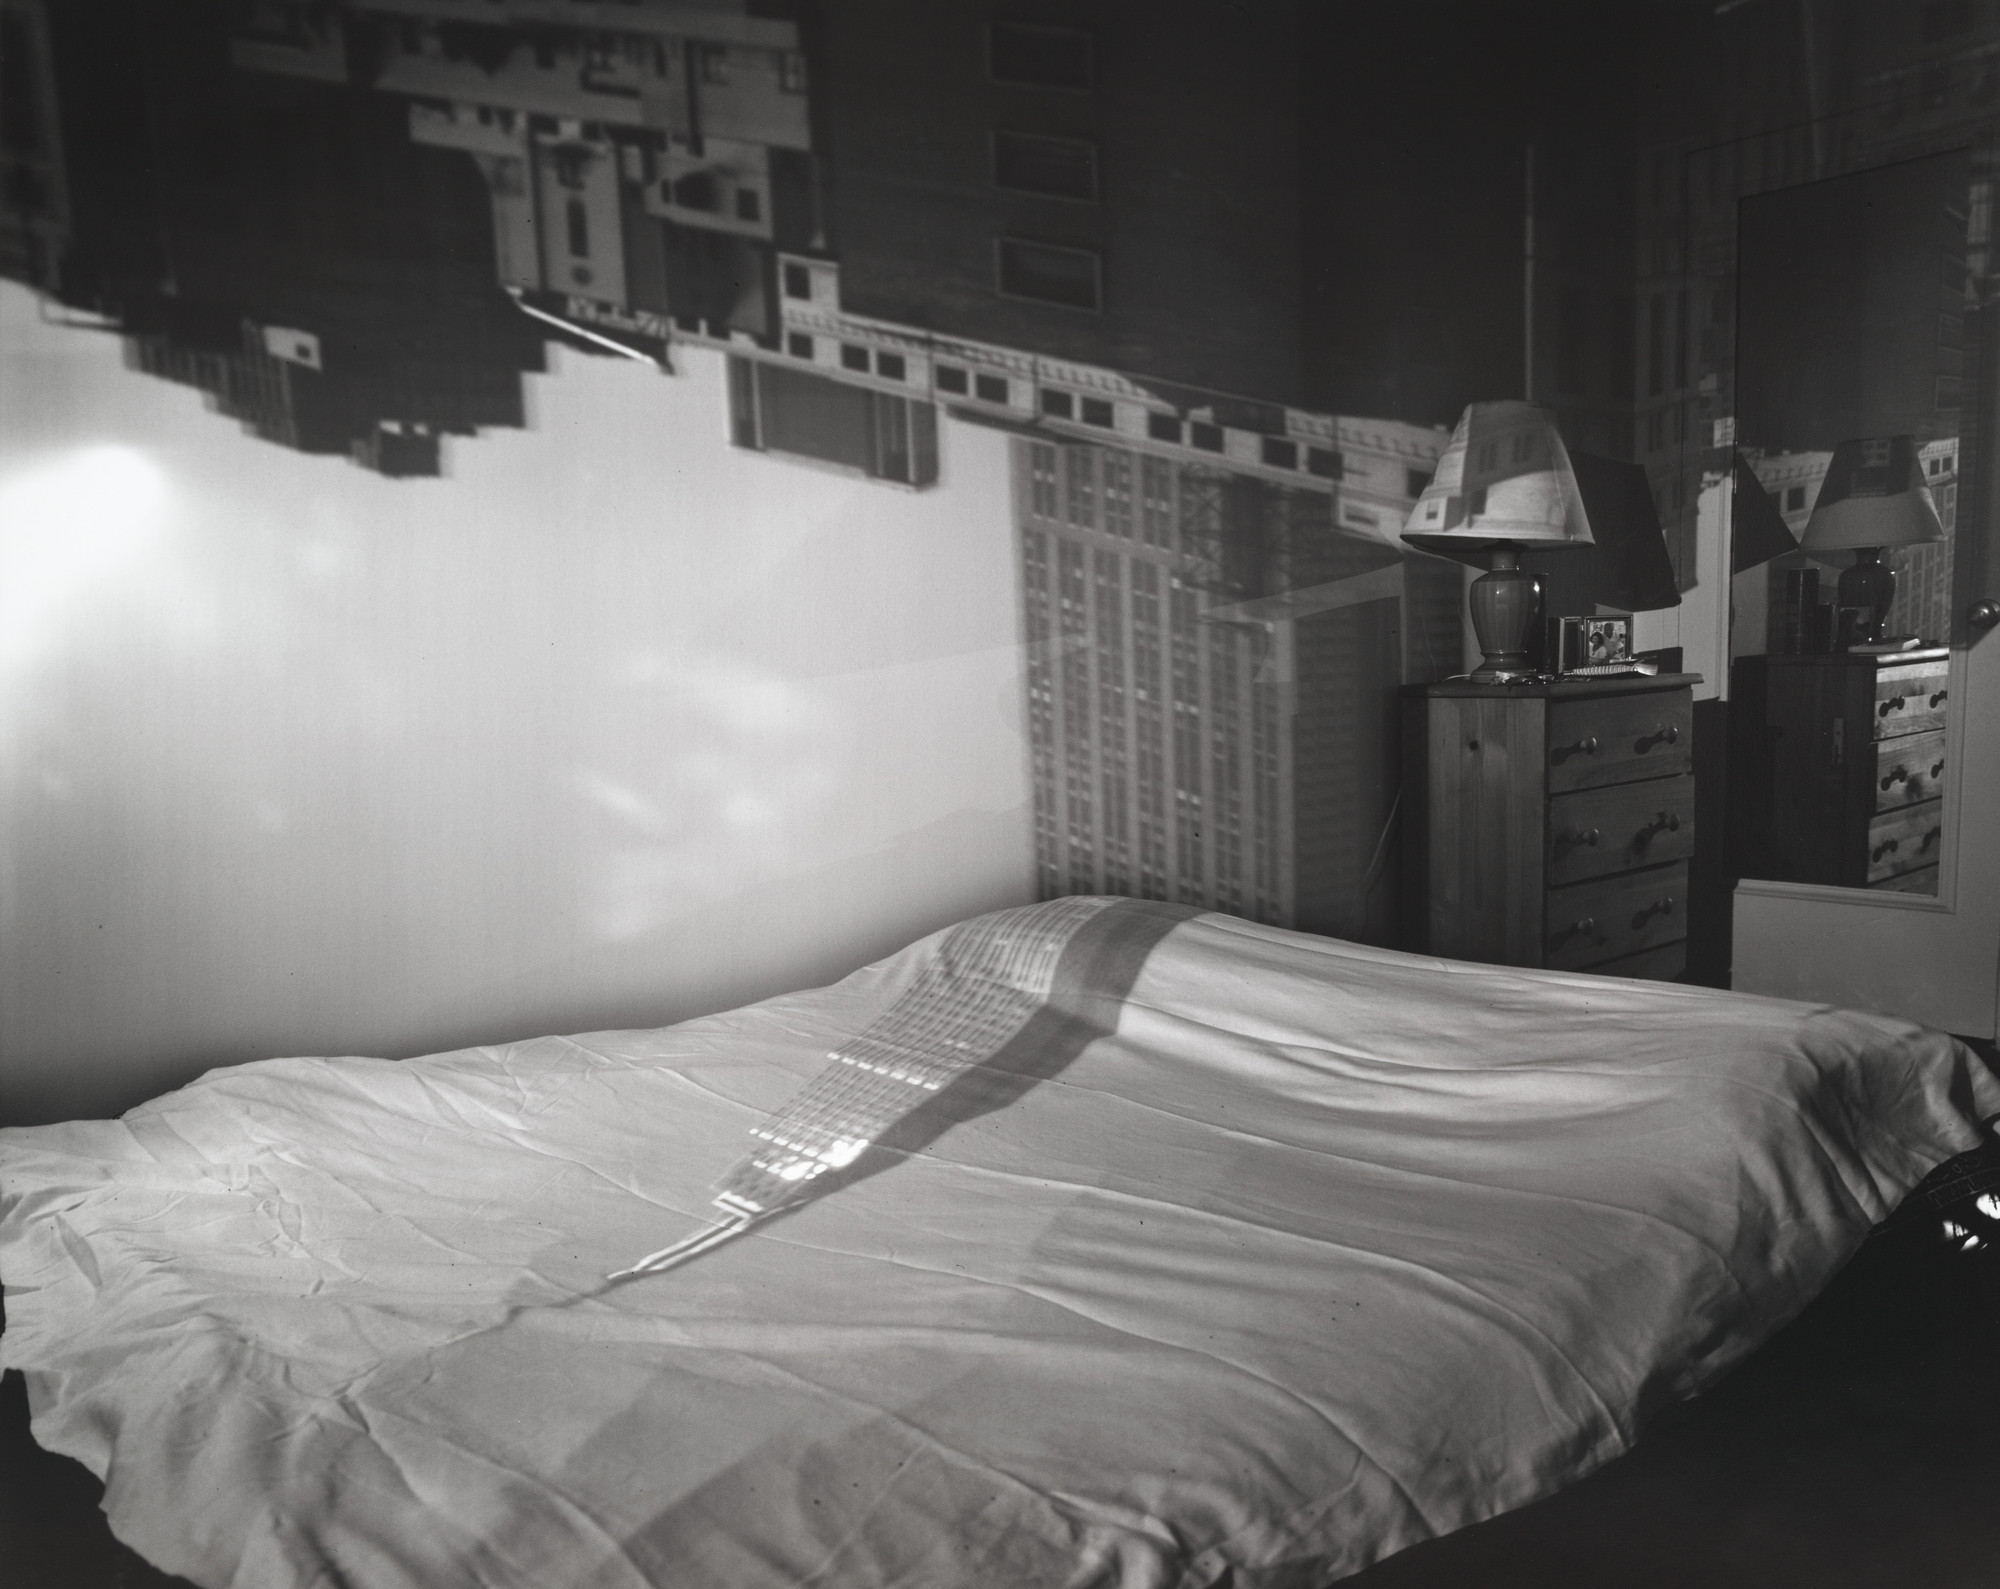 Abelardo Morell. Camera Obscura Image of the Empire State Building in Bedroom. 1994